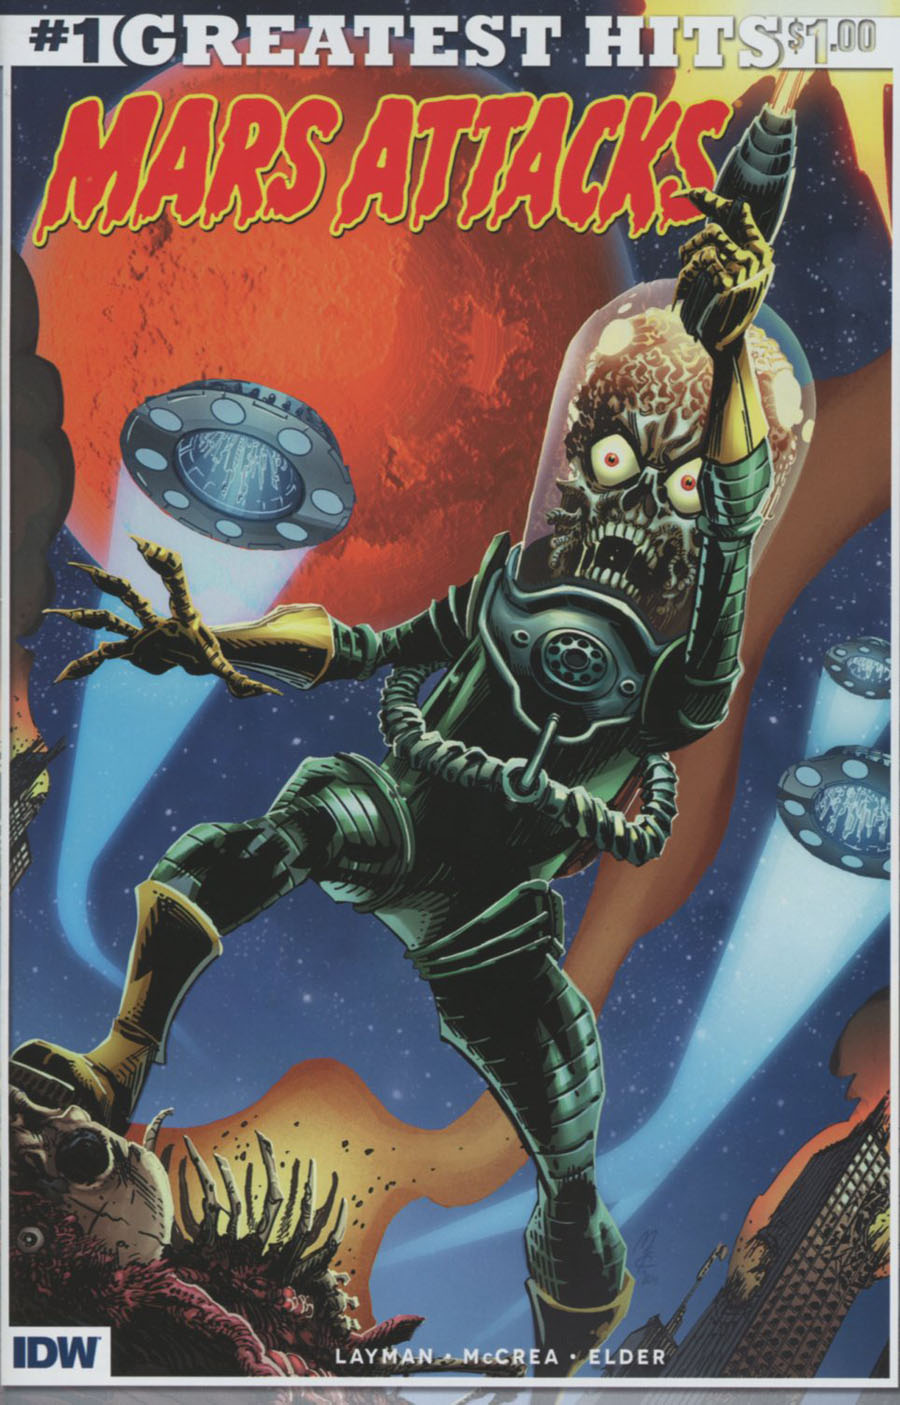 Mars Attacks Vol 3 #1 Cover Z-Z-H IDWs Greatest Hits